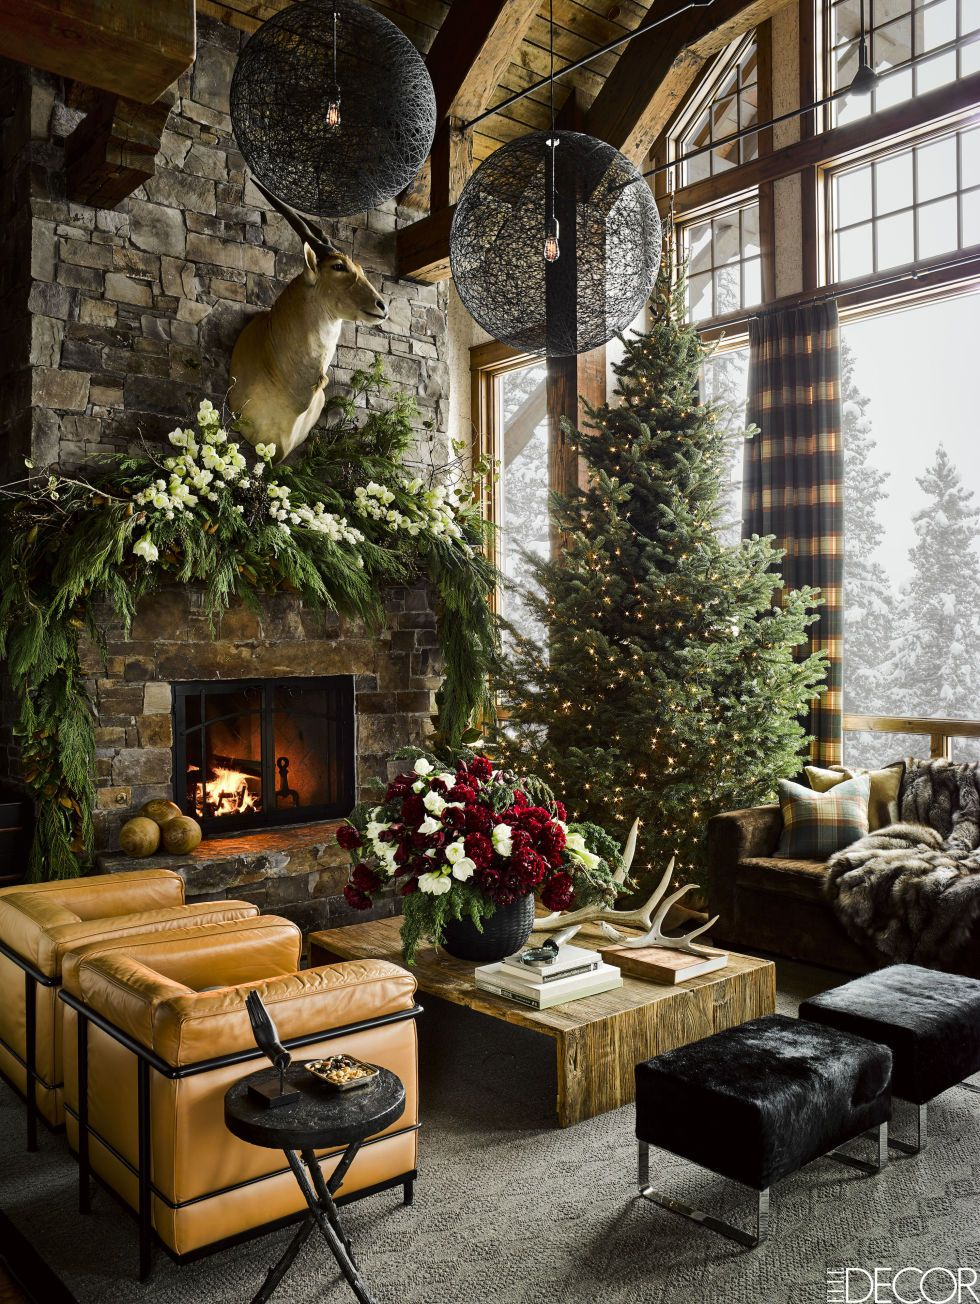 743 tags christmas decorations festival holiday christmas tree views - In A Yellowstone Ski House Decorated With A Christmas Tree Holiday Flowers And Garlands